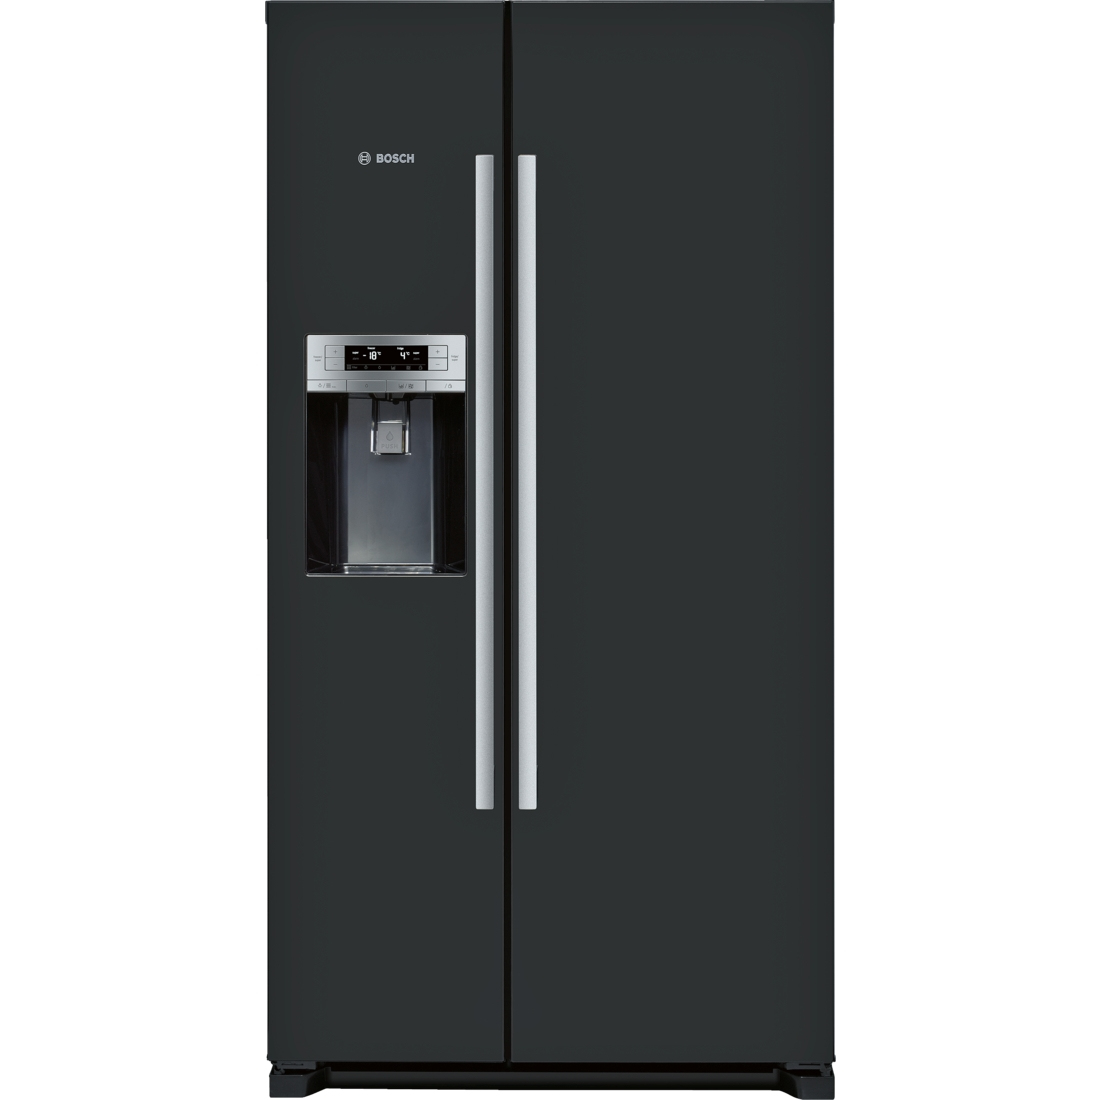 ᐈ Bosch Kad90vb20 Best Price Technical Specifications